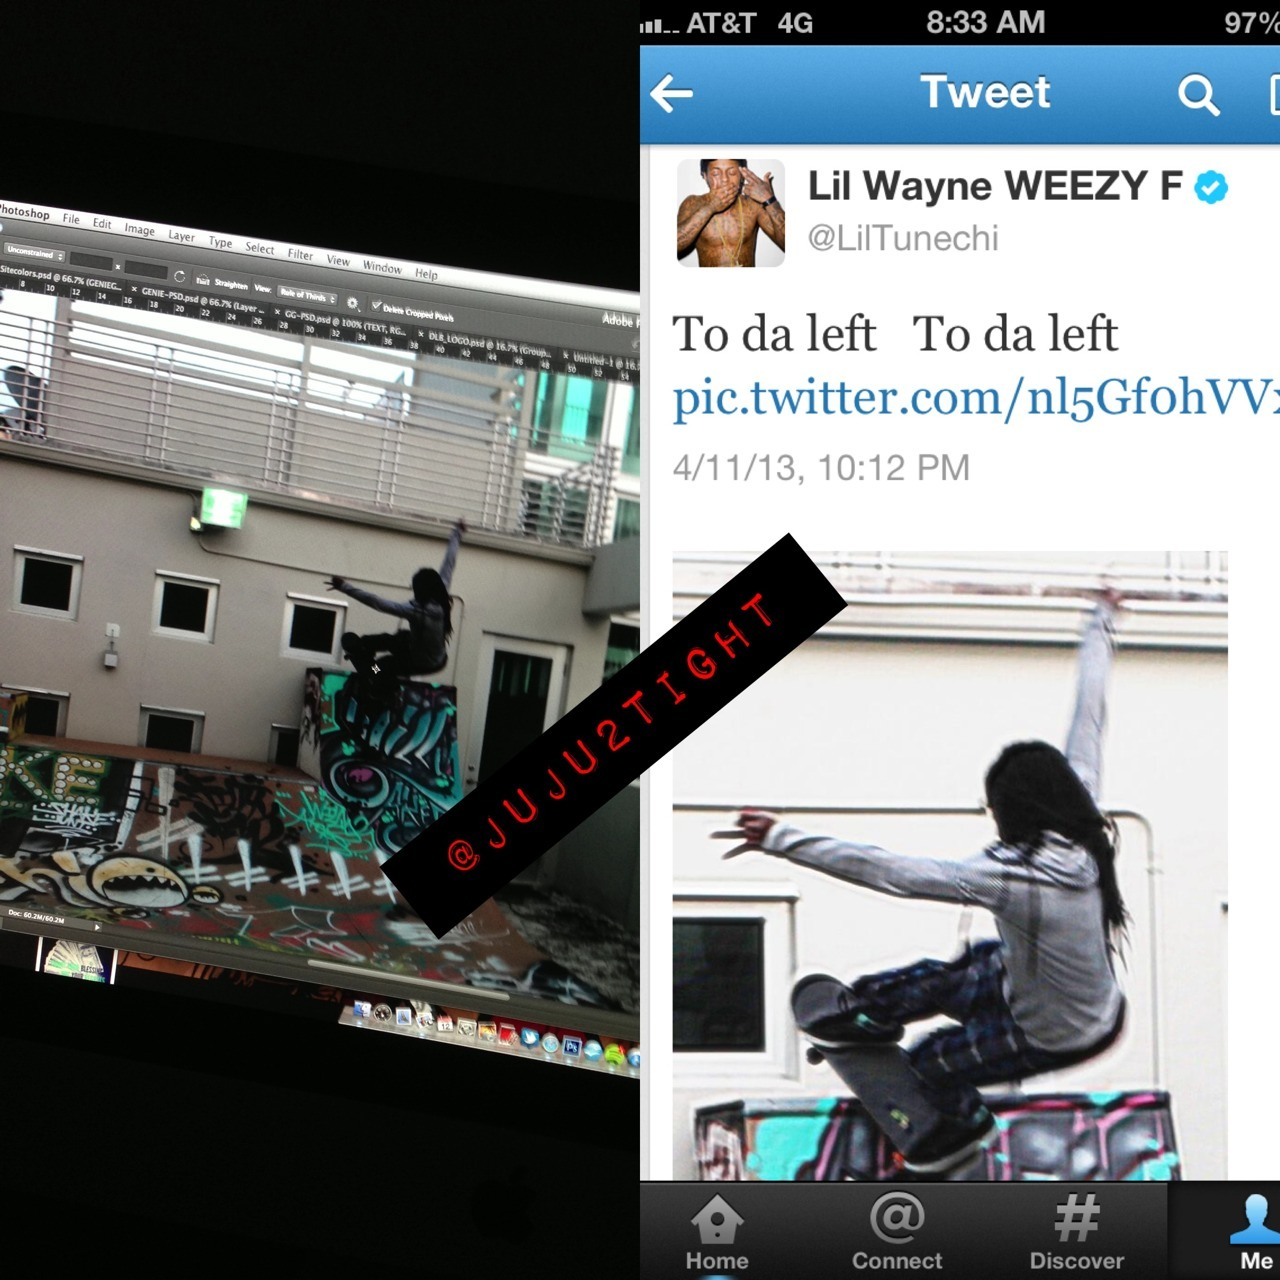 Whoop! :) Before & After - @LilTunechi. He liked it so much he had to tweet it lol